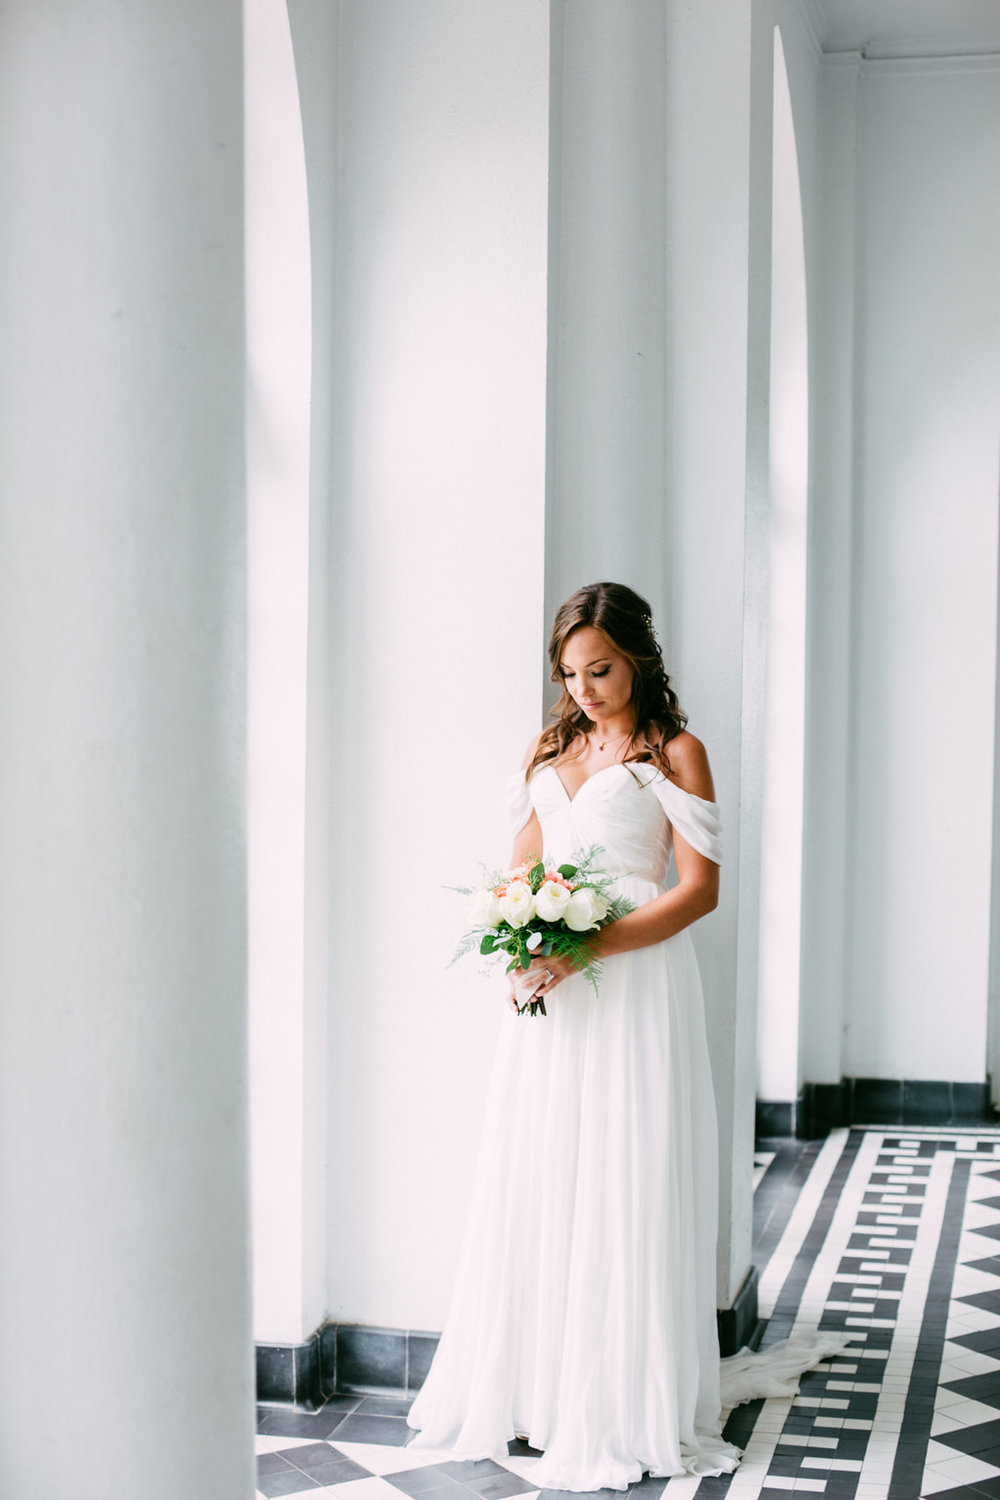 sara-bee-photography-charleston-wedding-savannah-weddings-ivory-and-beau-bridal-boutique-savannah-wedding-planner-sarah-seven-lafayette-sarah-seven-bride-sarah-seven-bridal-marsh-wedding-lowcountry-wedding-1.jpg